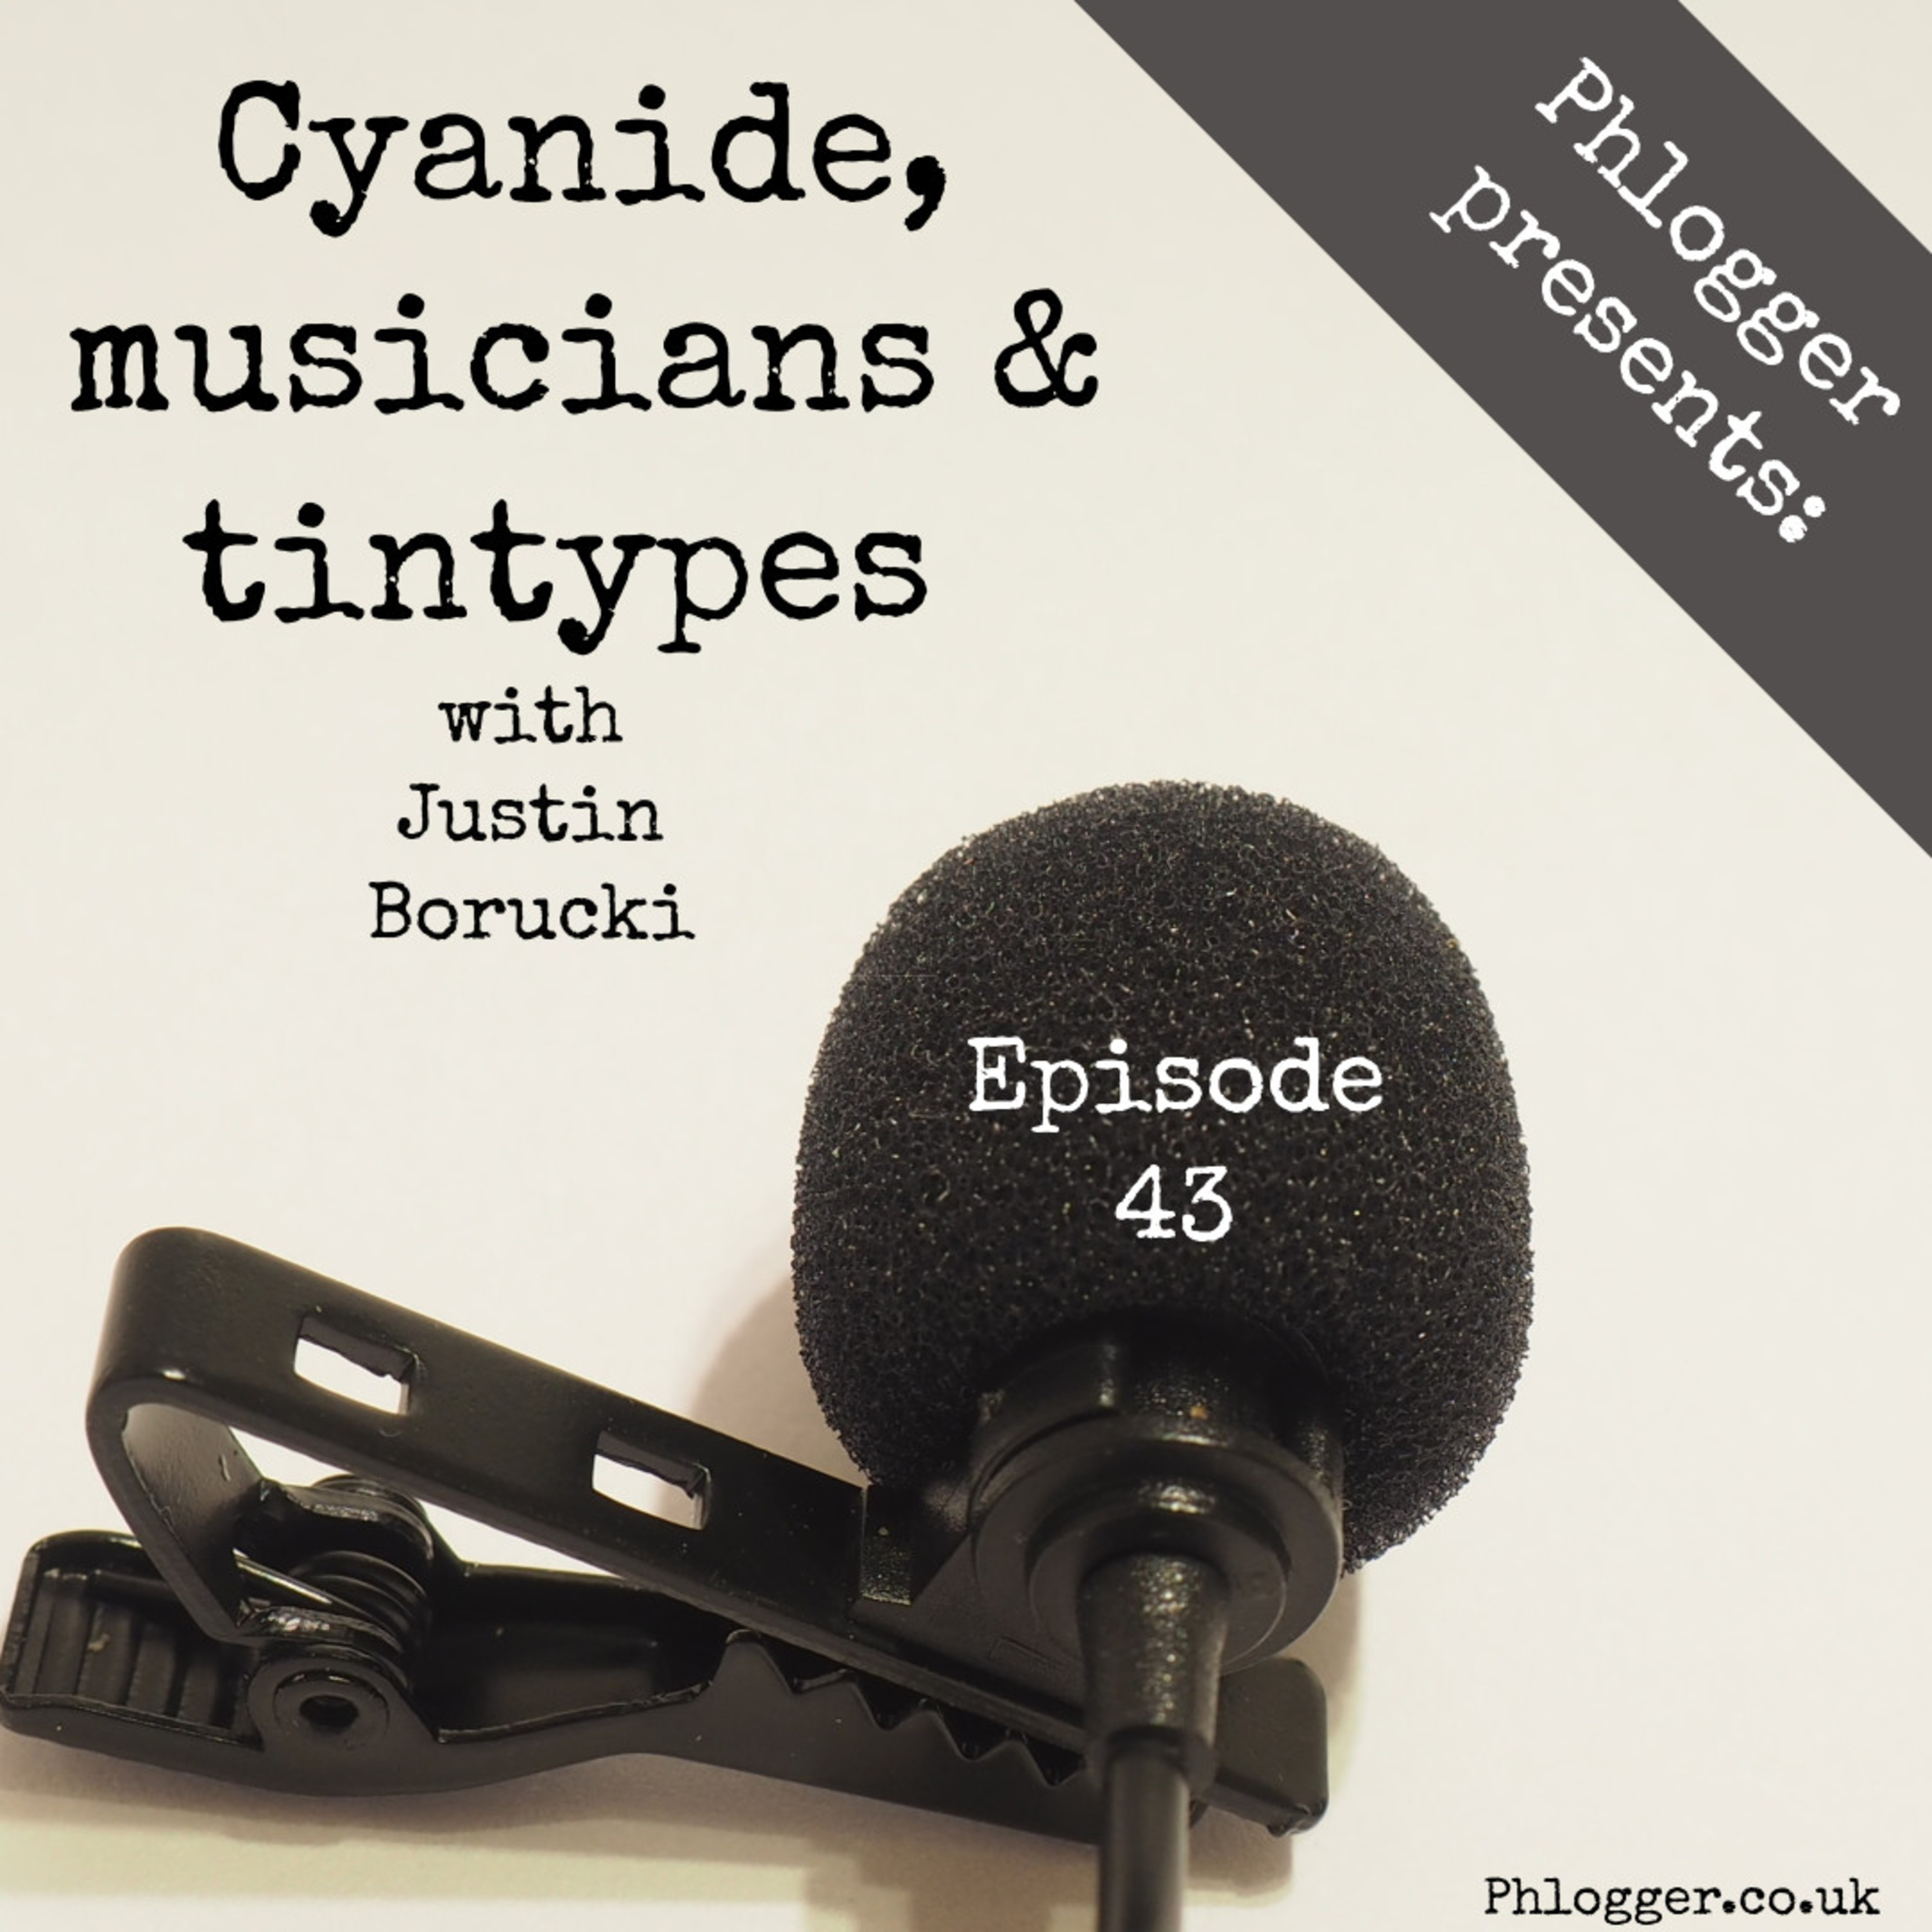 Cyanide, musicians + tintypes - an interview with Justin Borucki